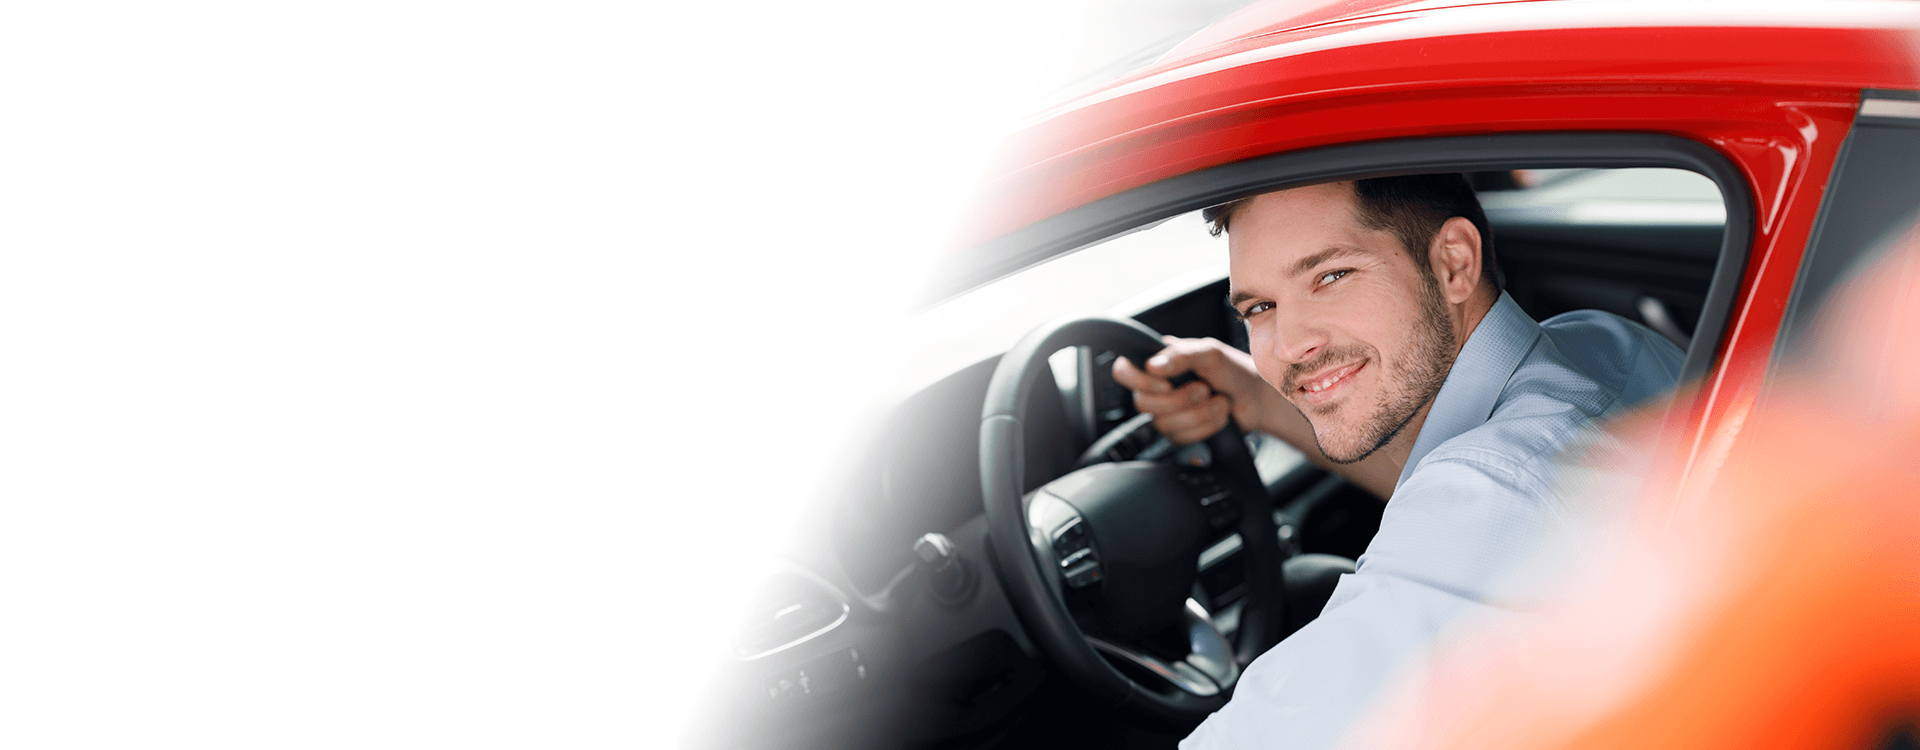 man smiling sitting in the car with doors opened